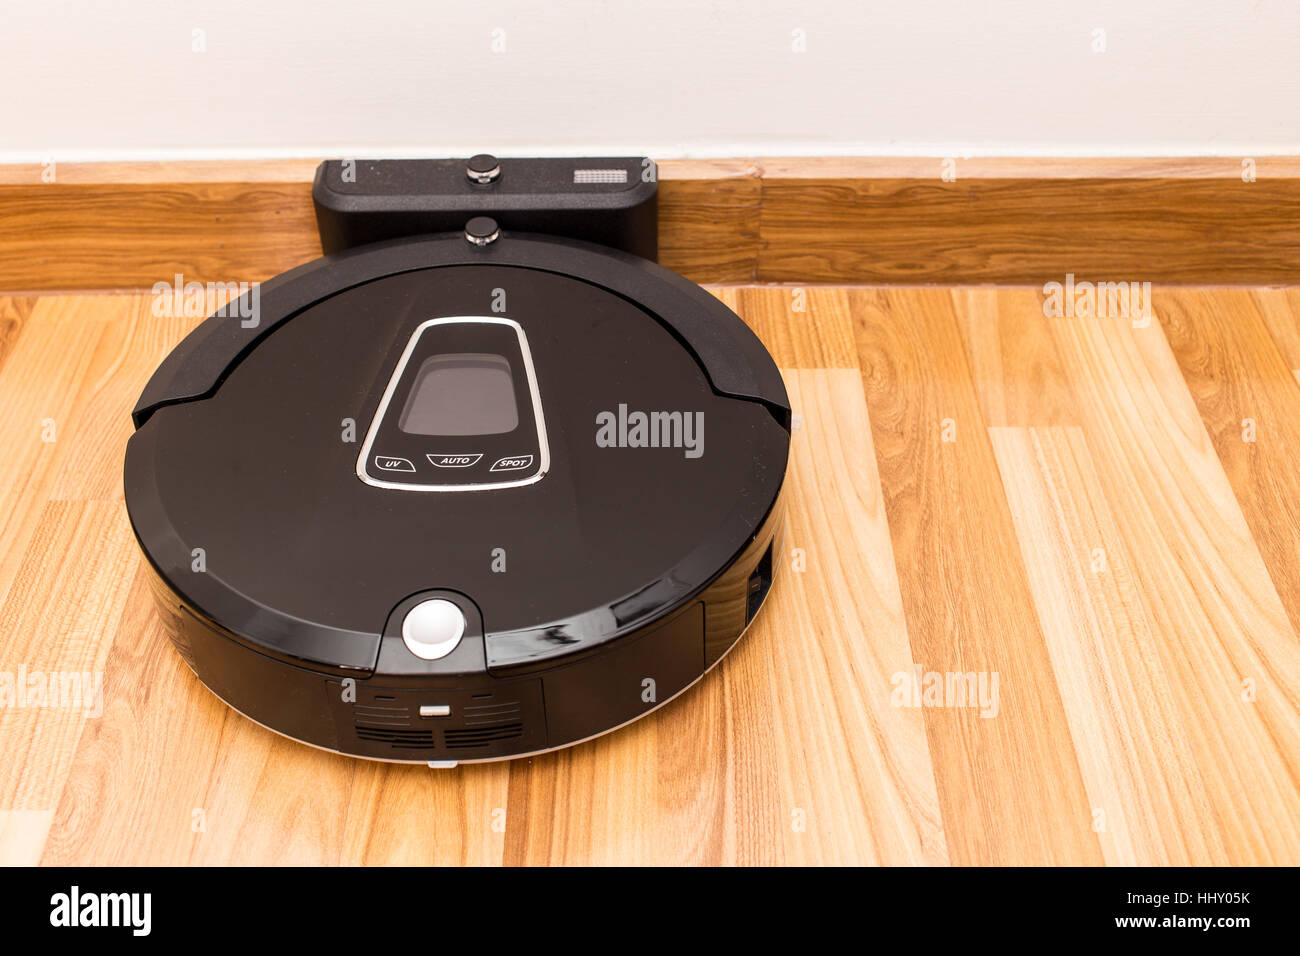 Robotic vacuum cleaner on wood parquet floor, Smart vacuum, new automate technology housework. - Stock Image